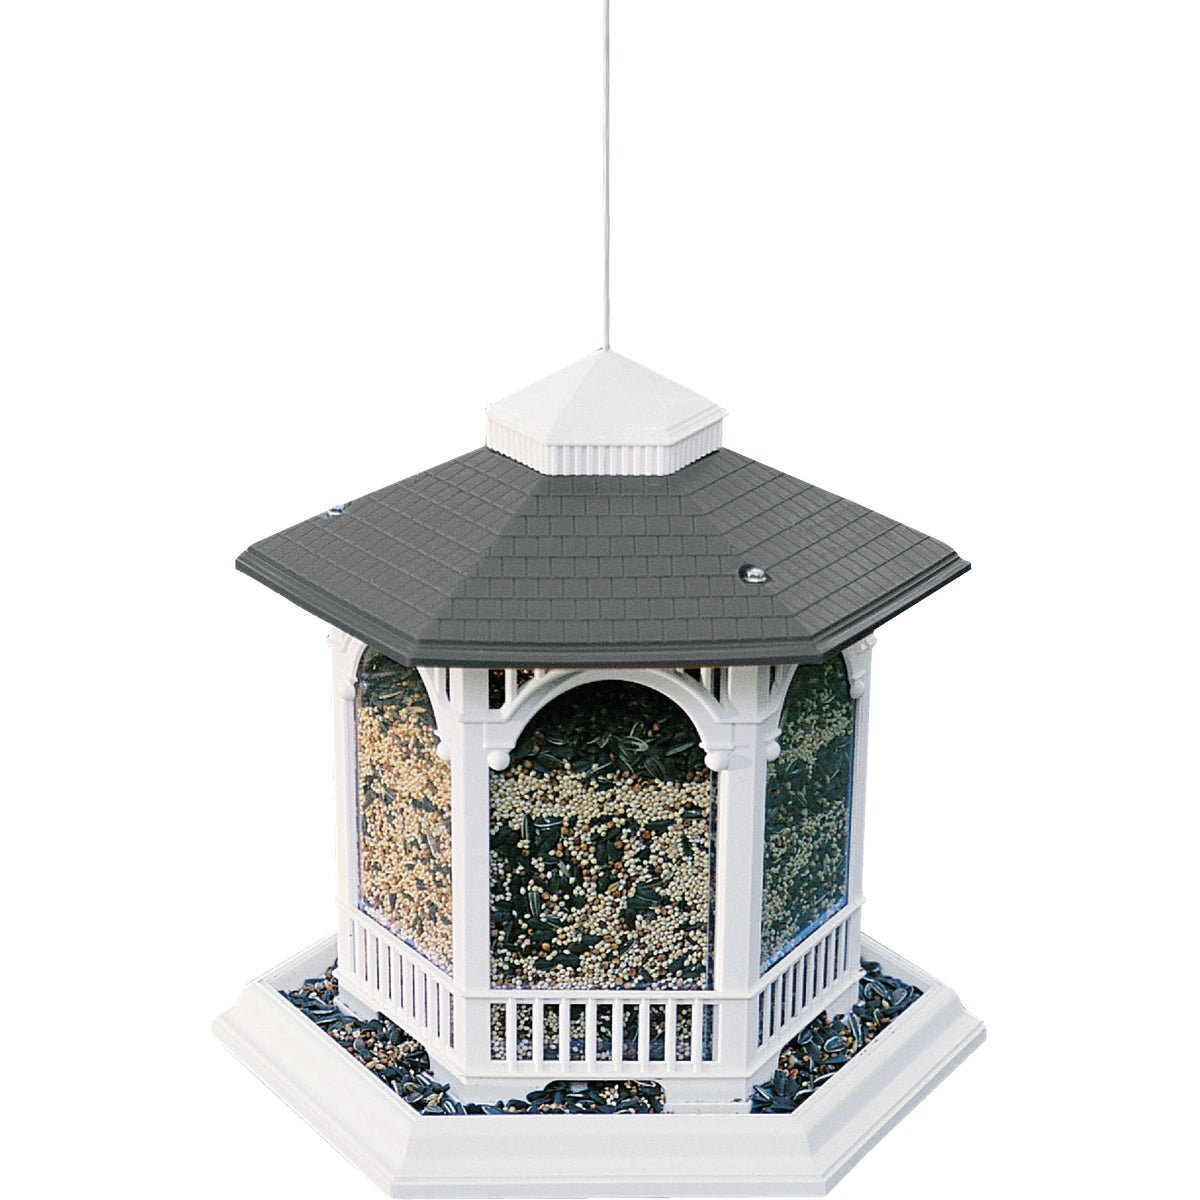 GAZEBO BIRD FEEDER - 6262 by Kay Home Products